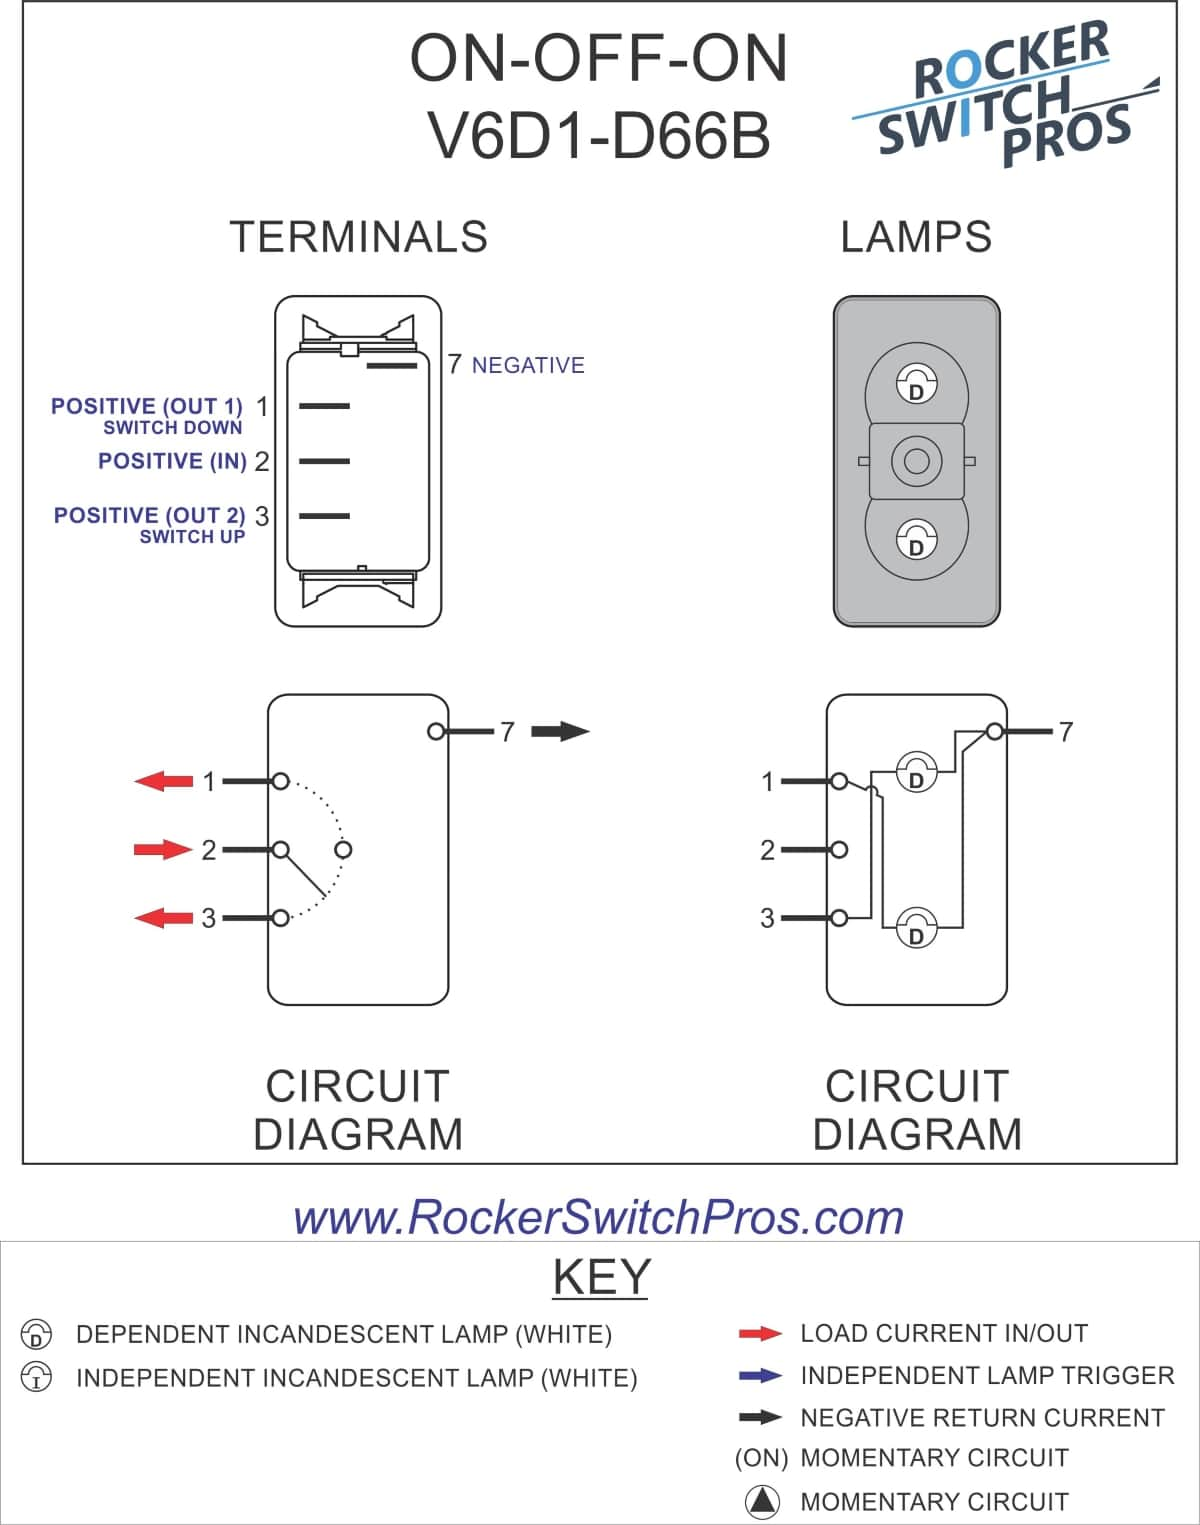 Carling Switch Wiring Diagrams : carling, switch, wiring, diagrams, Rocker, Switch, ON-OFF-ON, Lights